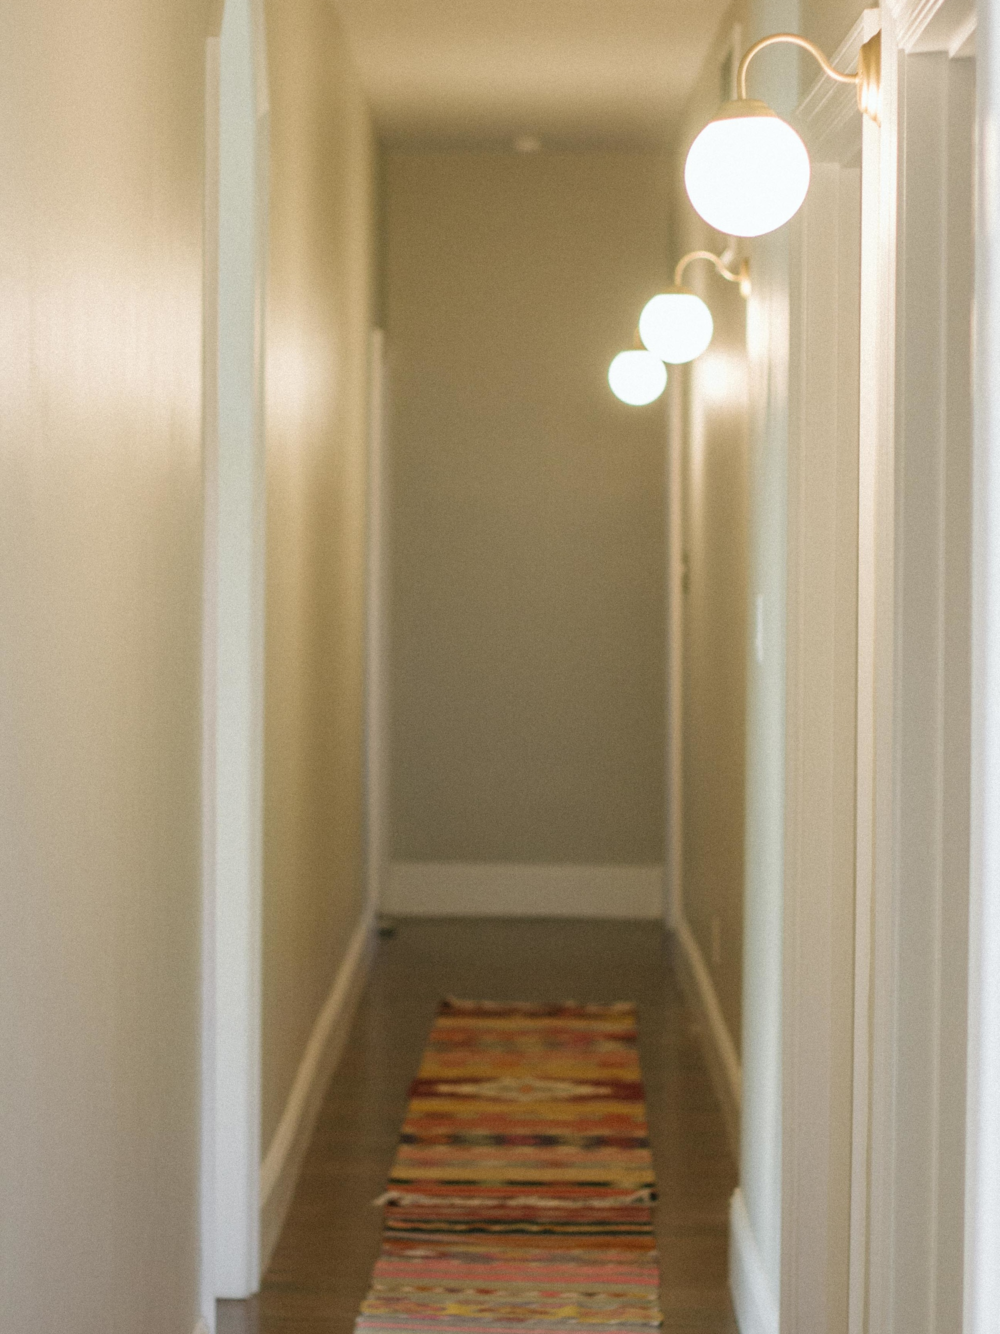 hallway sconce lighting. BEFORE + AFTER \u2022 HALLWAY LIGHTING IKEA LILLHOLMEN SCONCE Hallway Sconce Lighting D